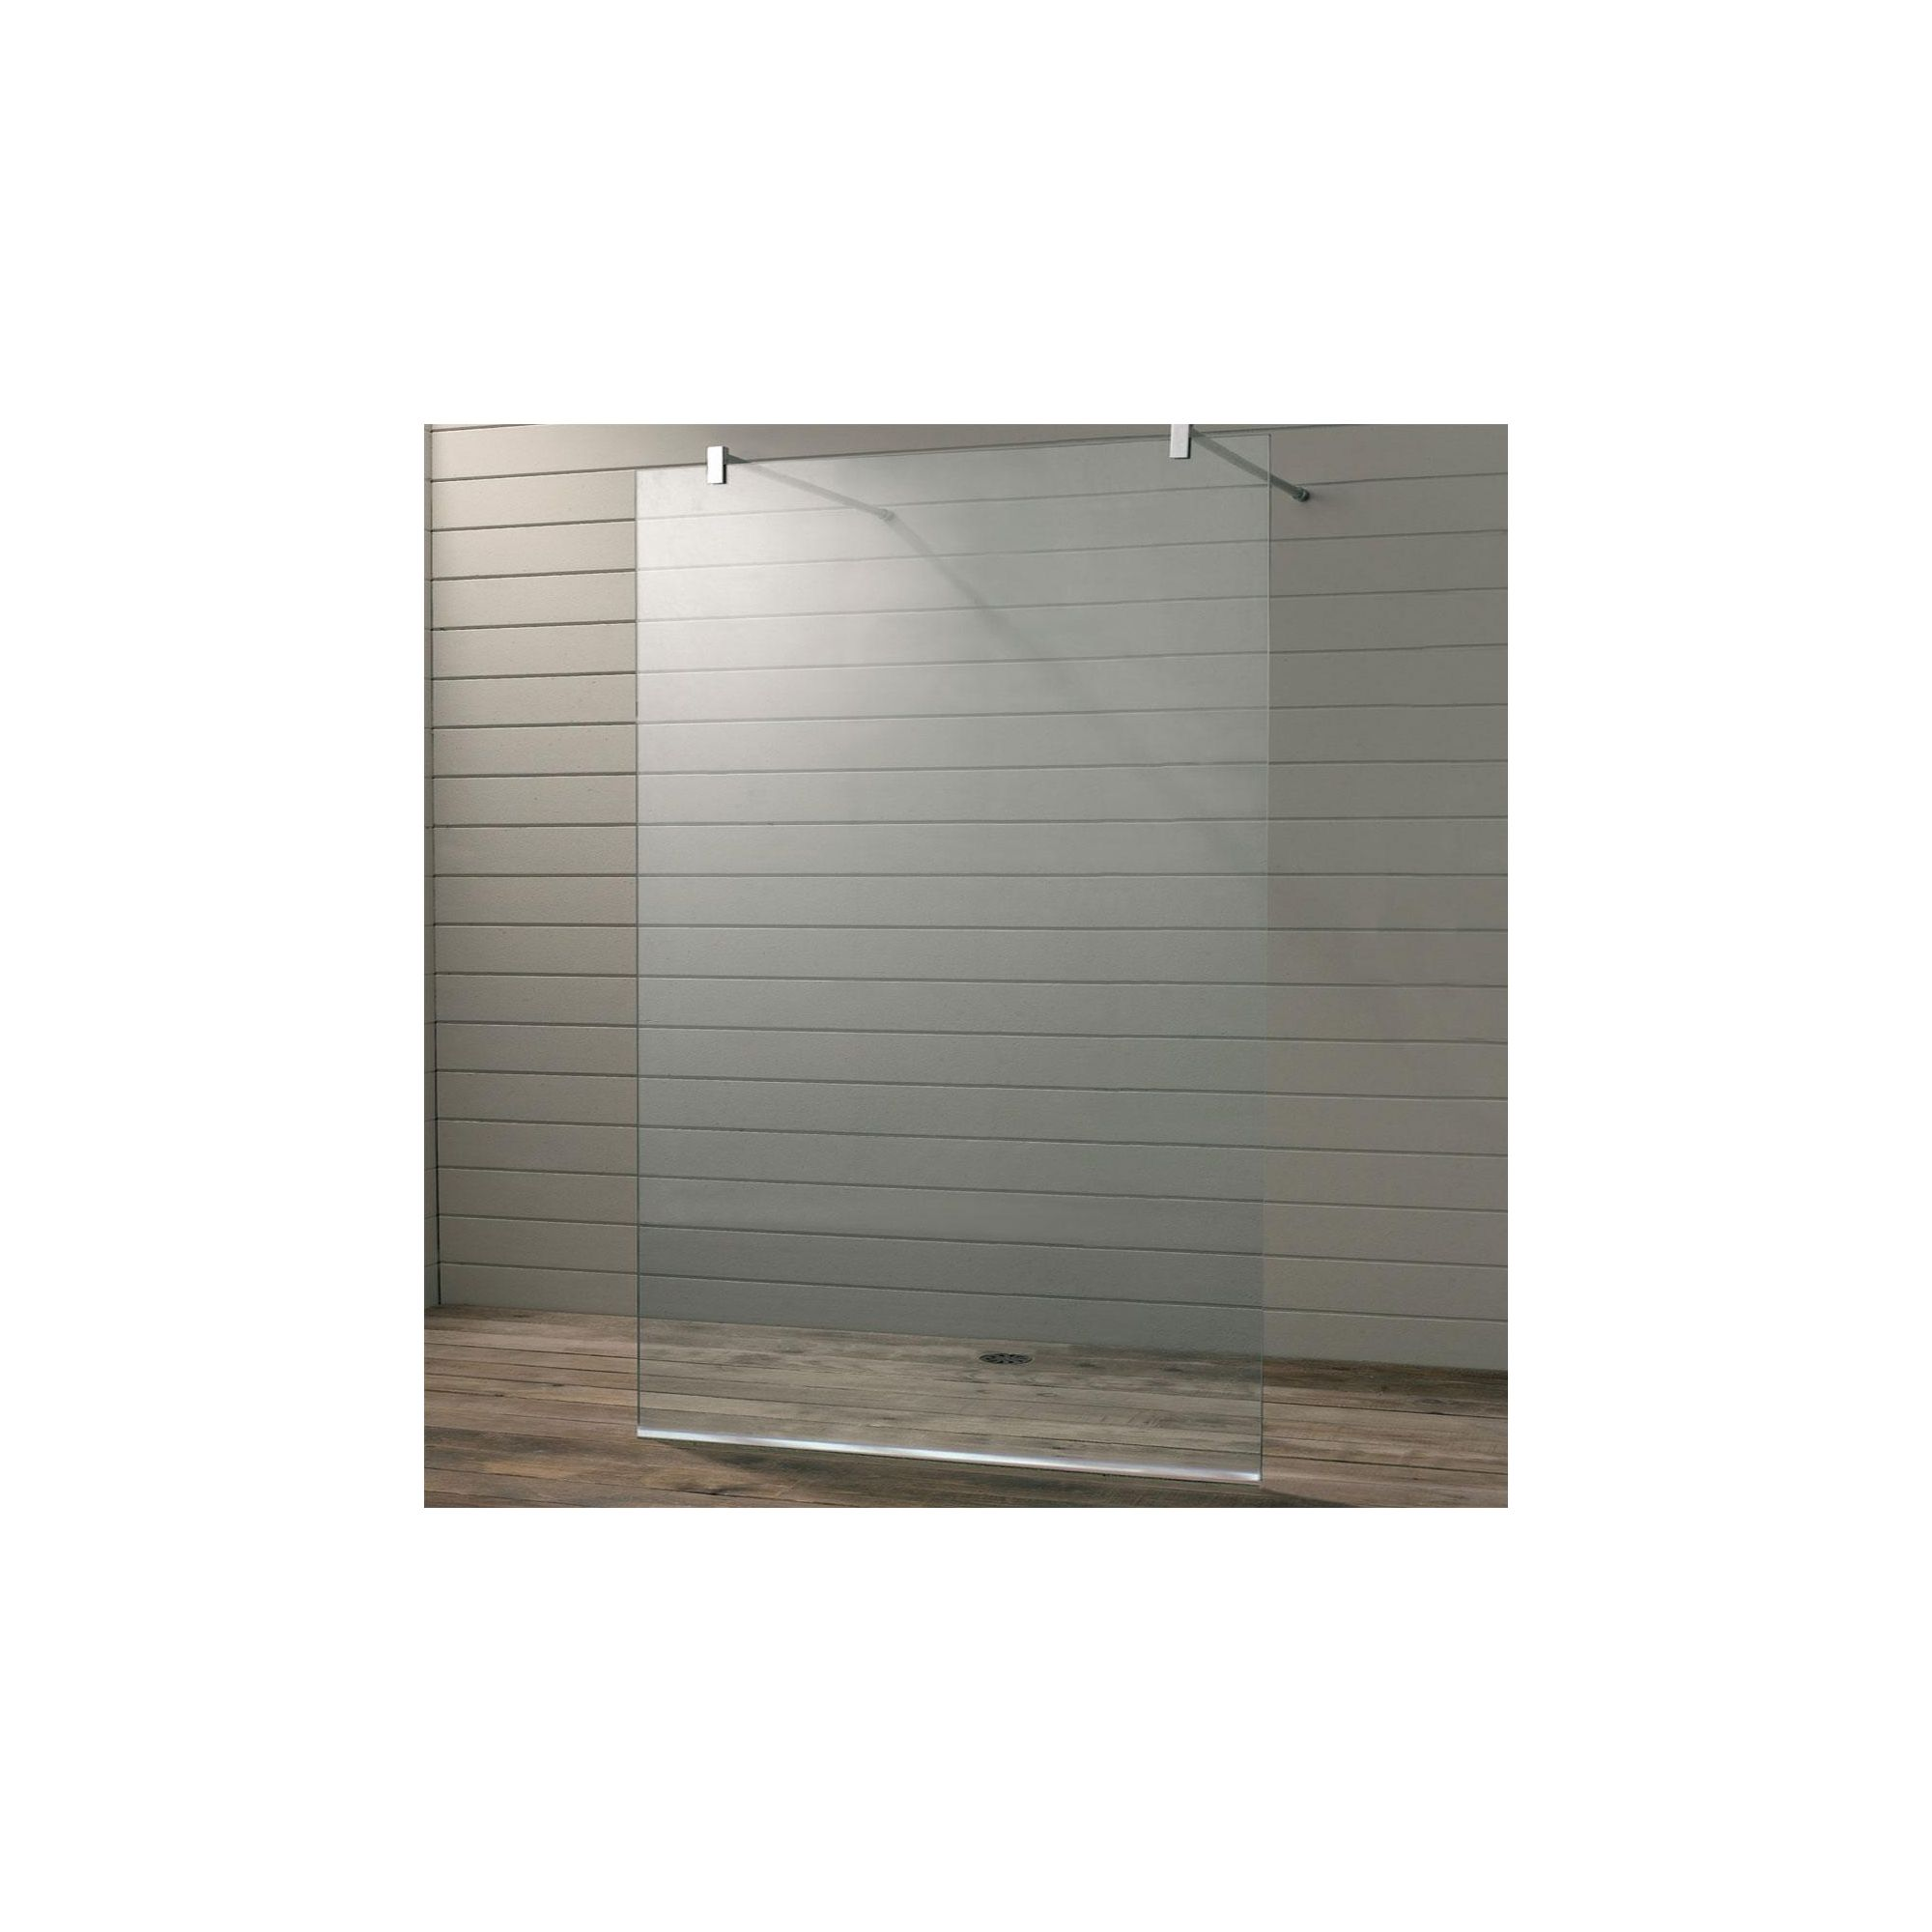 Duchy Premium Wet Room Glass Shower Panel, 1100mm x 700mm, 10mm Glass, Low Profile Tray at Tescos Direct